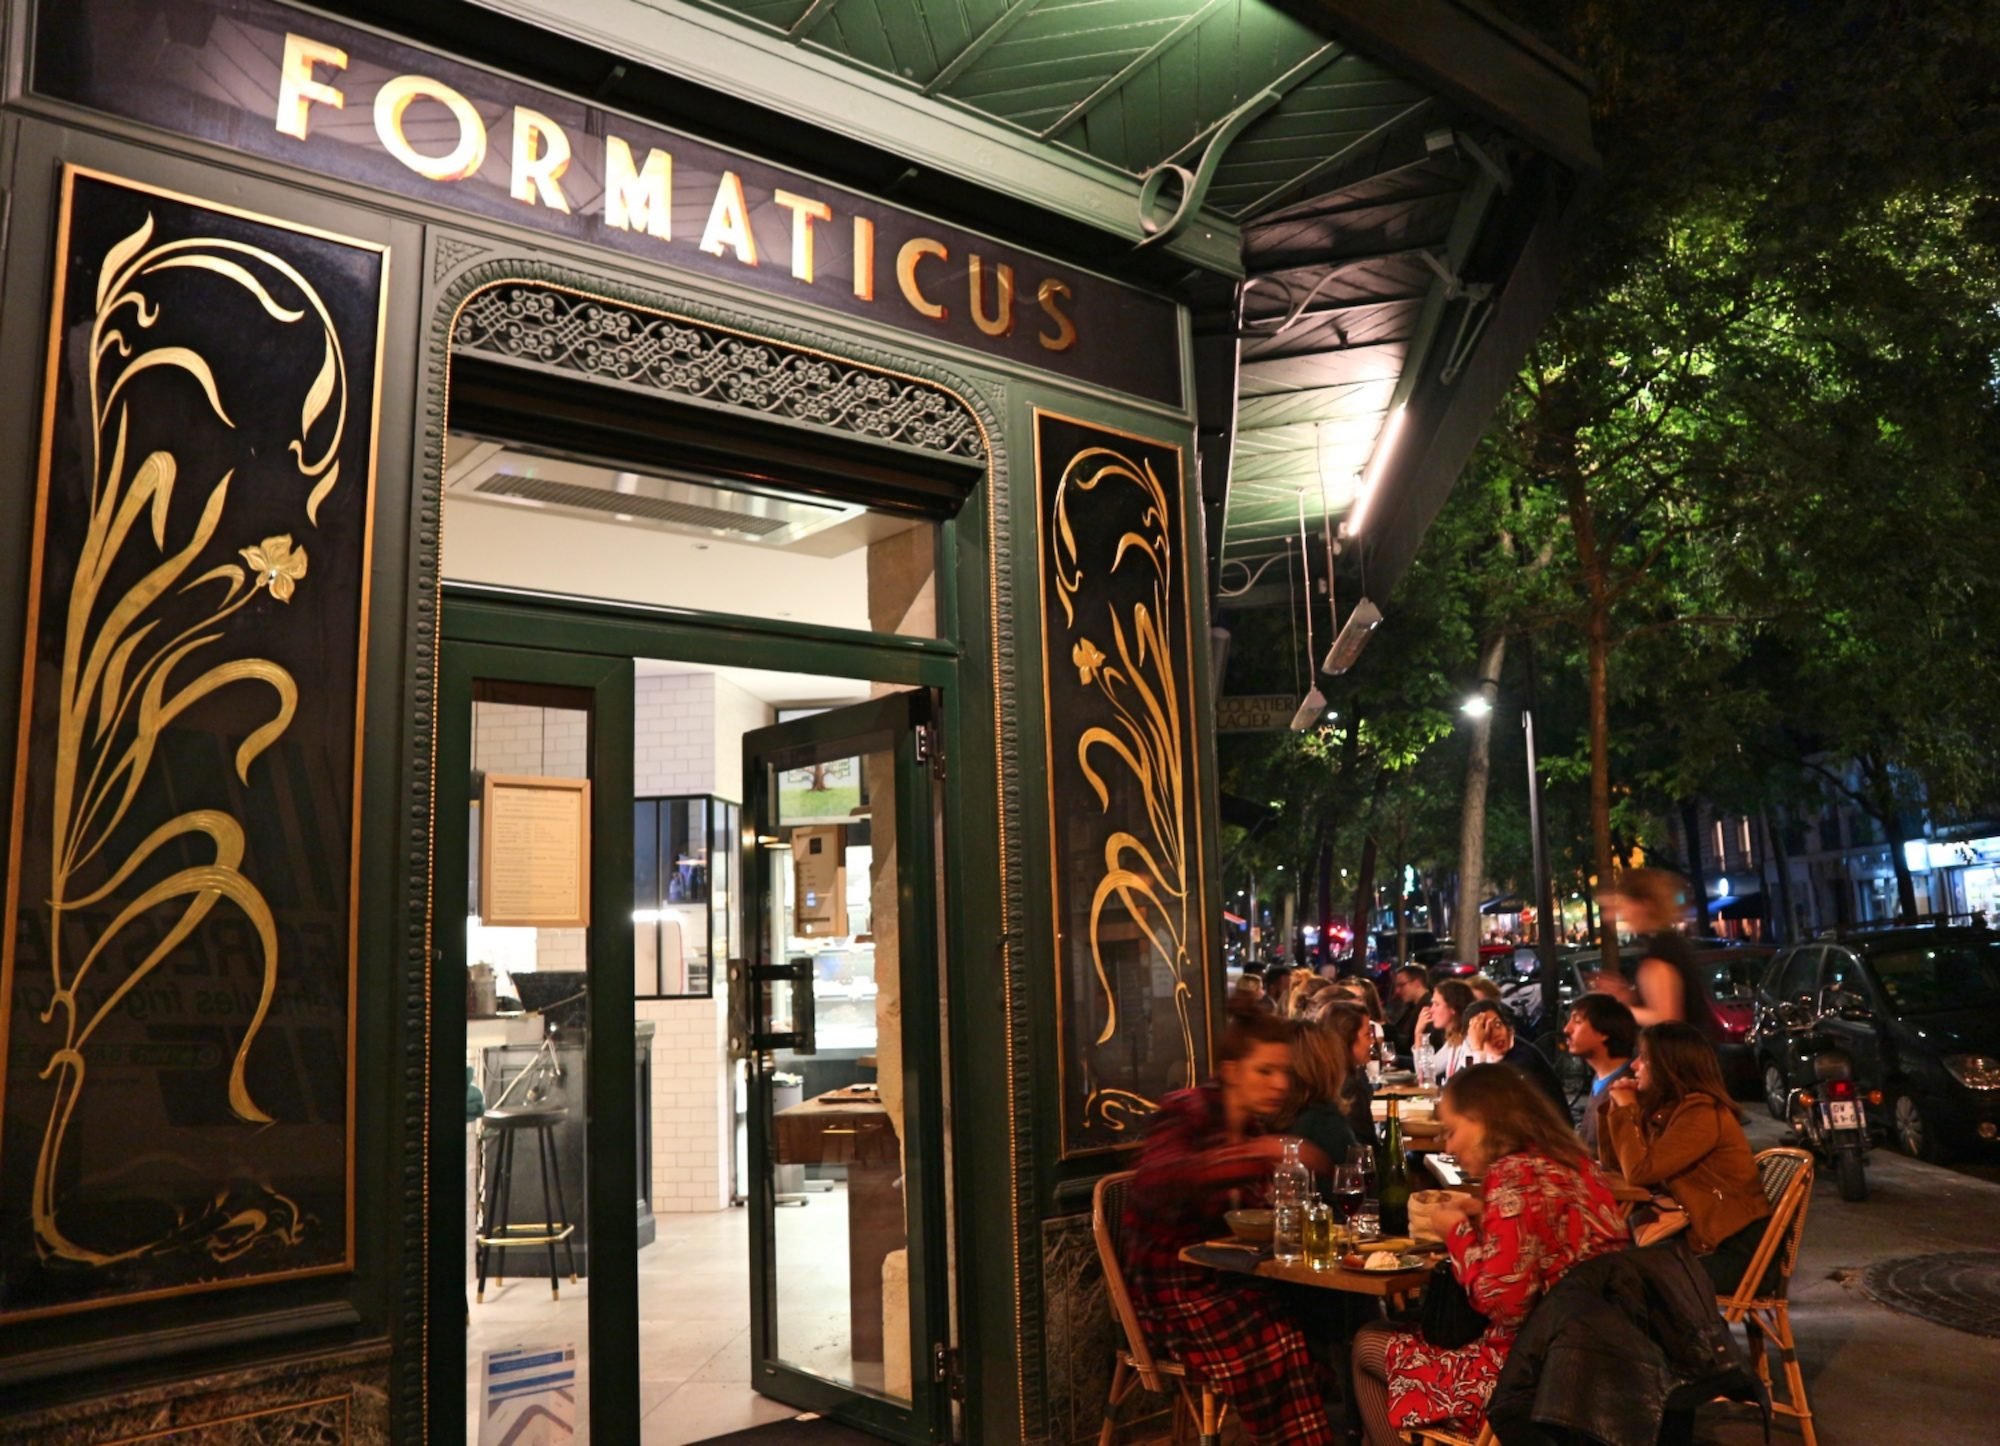 Formaticus with its beautiful Art Nouveau exterior, is one of our favorite restaurants to eat French food in Paris' Batignolles neighborhood.